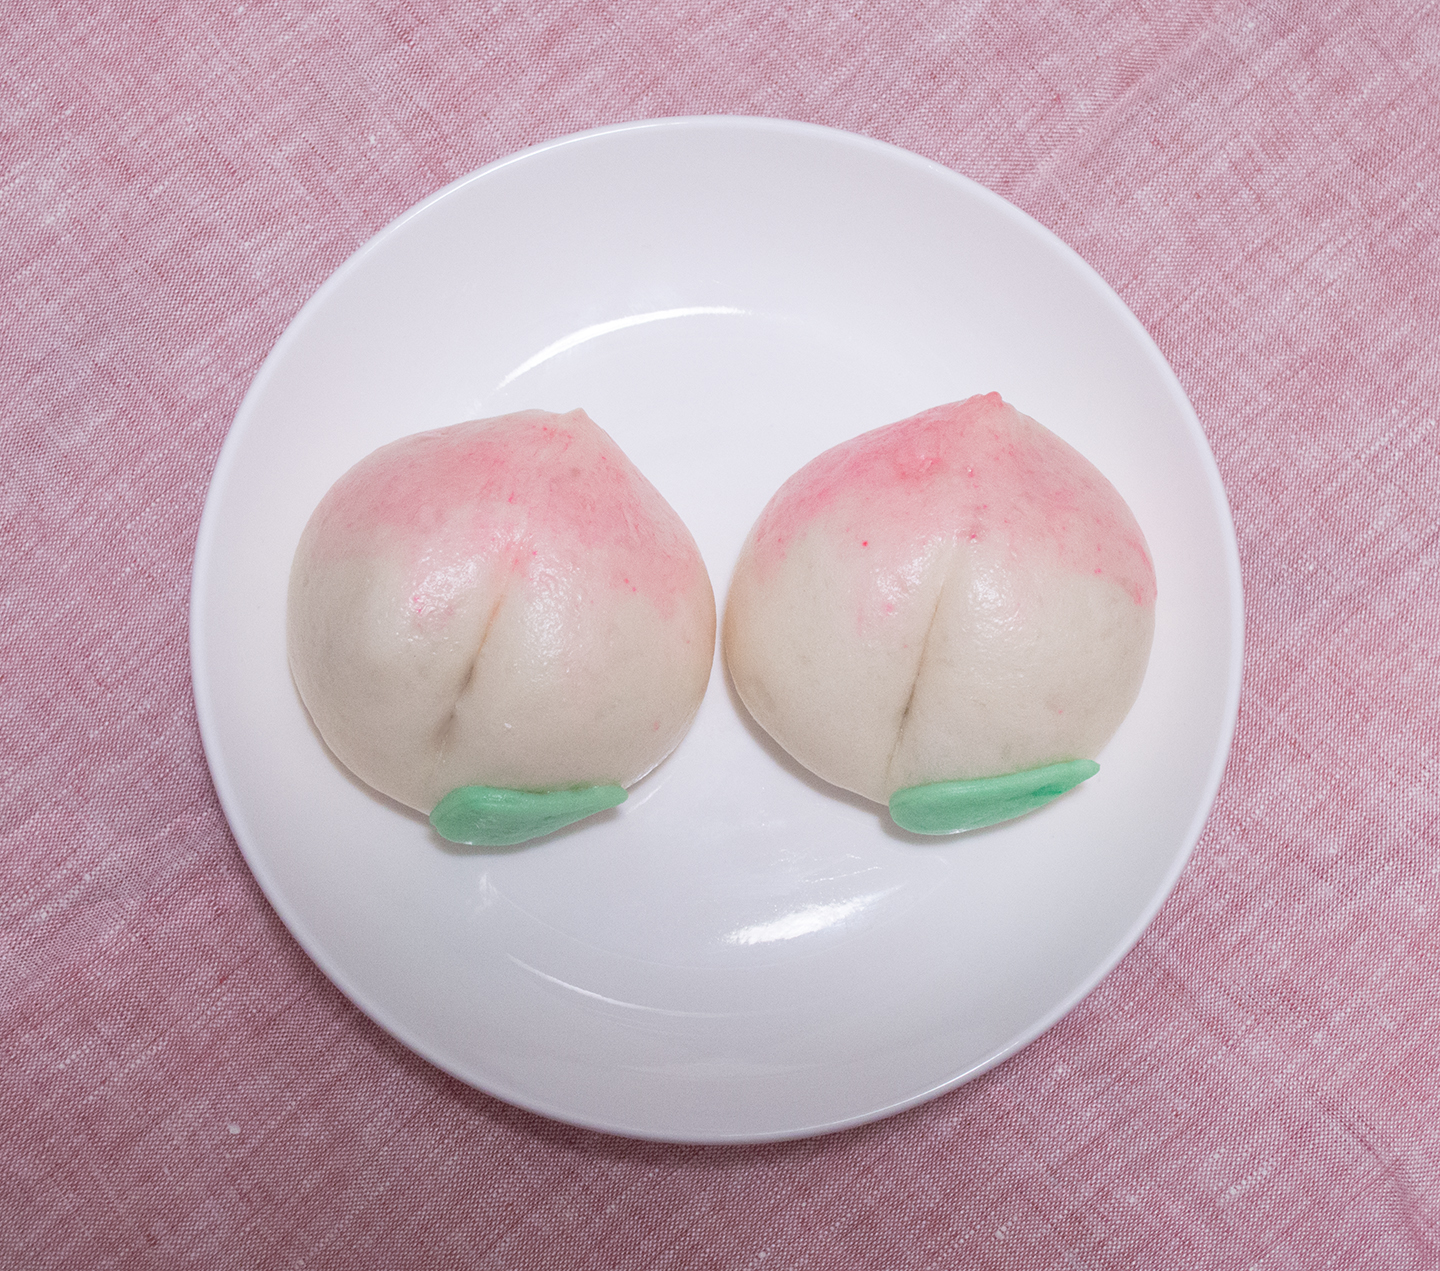 Longevity Peach Lotus Paste Steamed Buns - Two Peach Lotus Buns